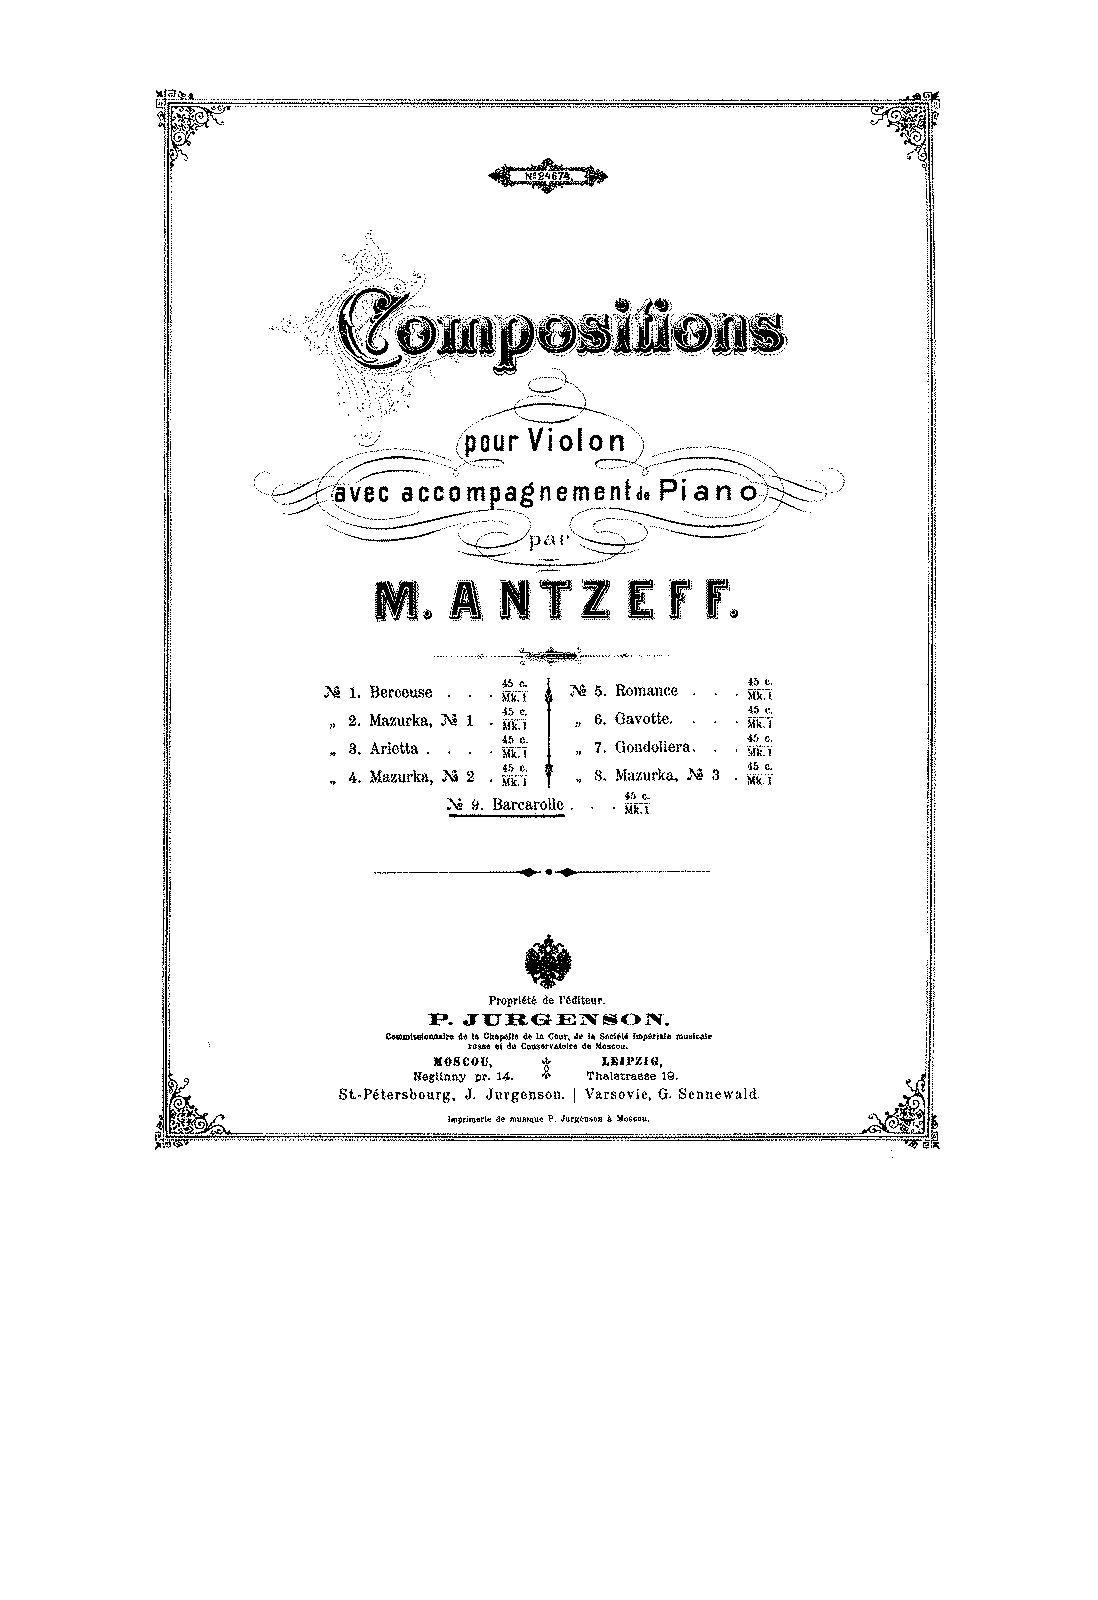 SIBLEY1802.10815.4851-39087004900884compositions 9.pdf